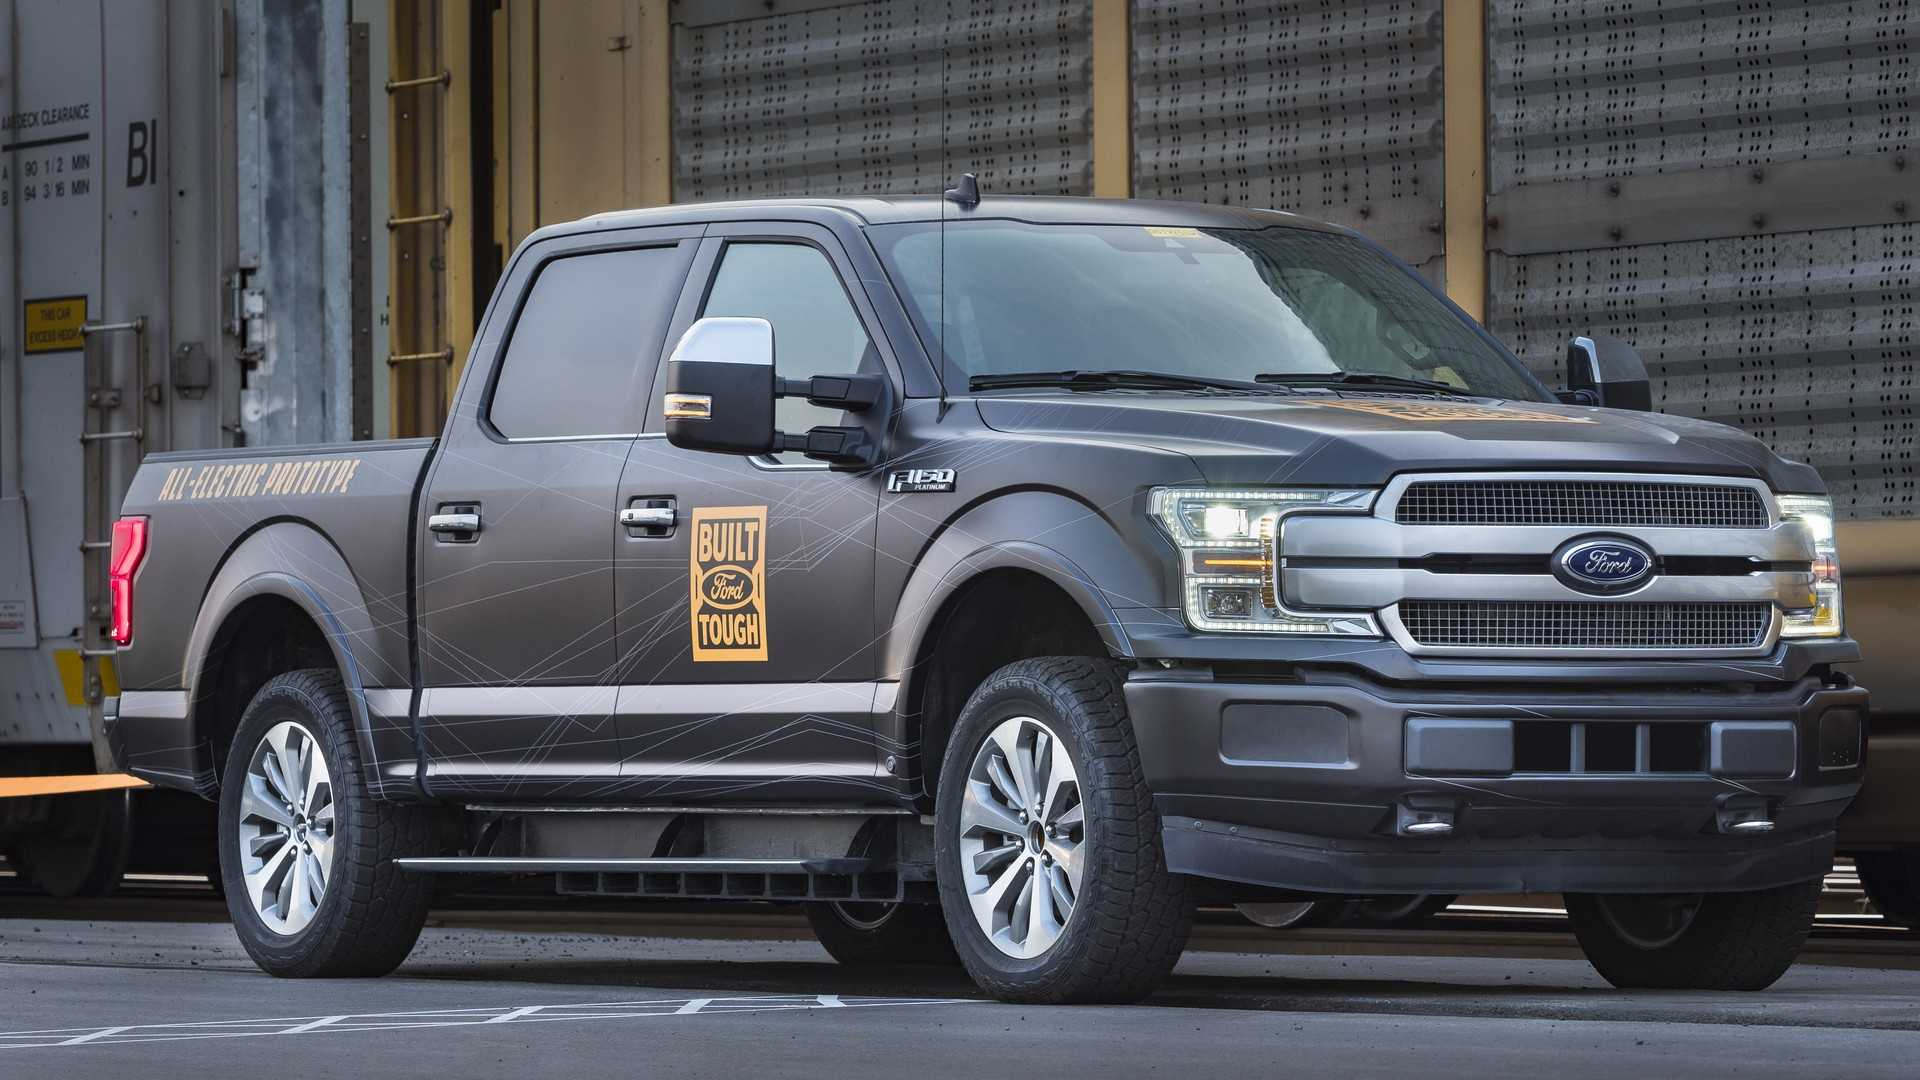 Ford F-150 Electric Pickup Truck: Everything We Know - Launch, Specs